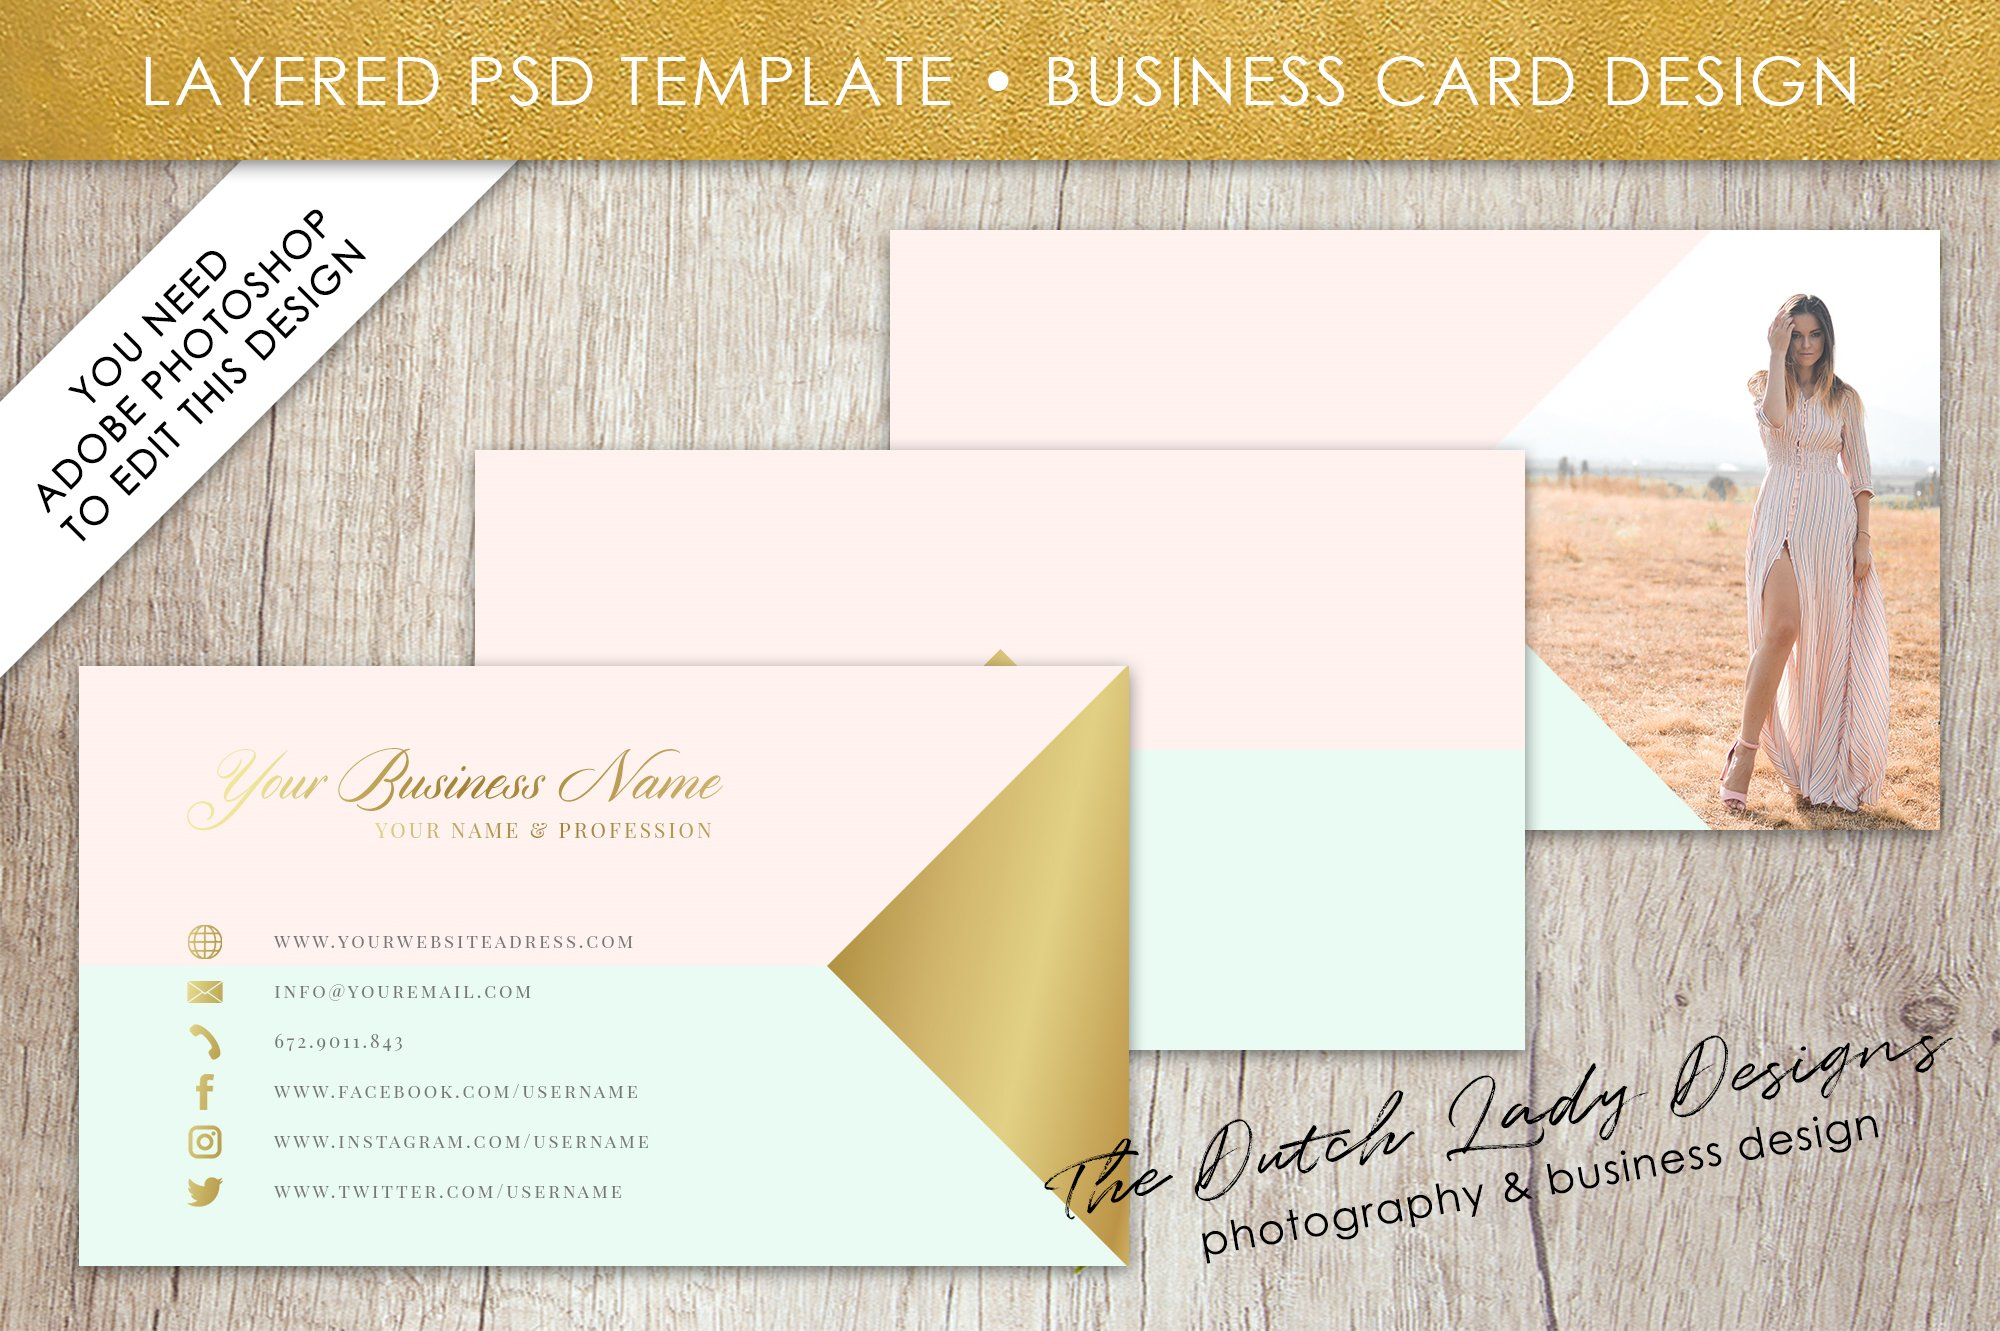 Photoshop Business Card Template Business Card Templates - Photoshop business card template